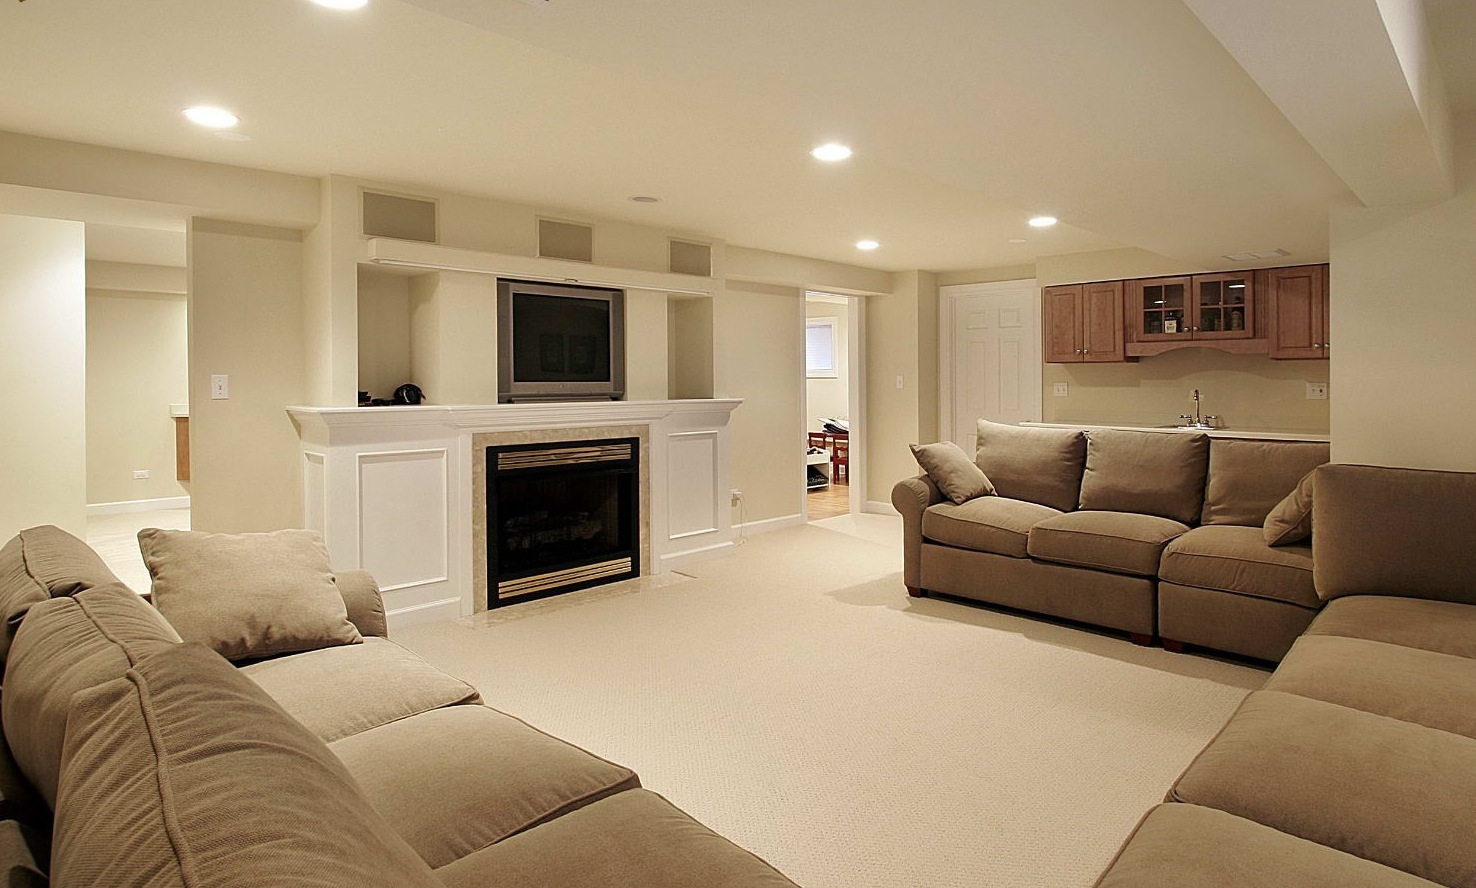 Basement Improvement Ideas 30 basement remodeling ideas & inspiration